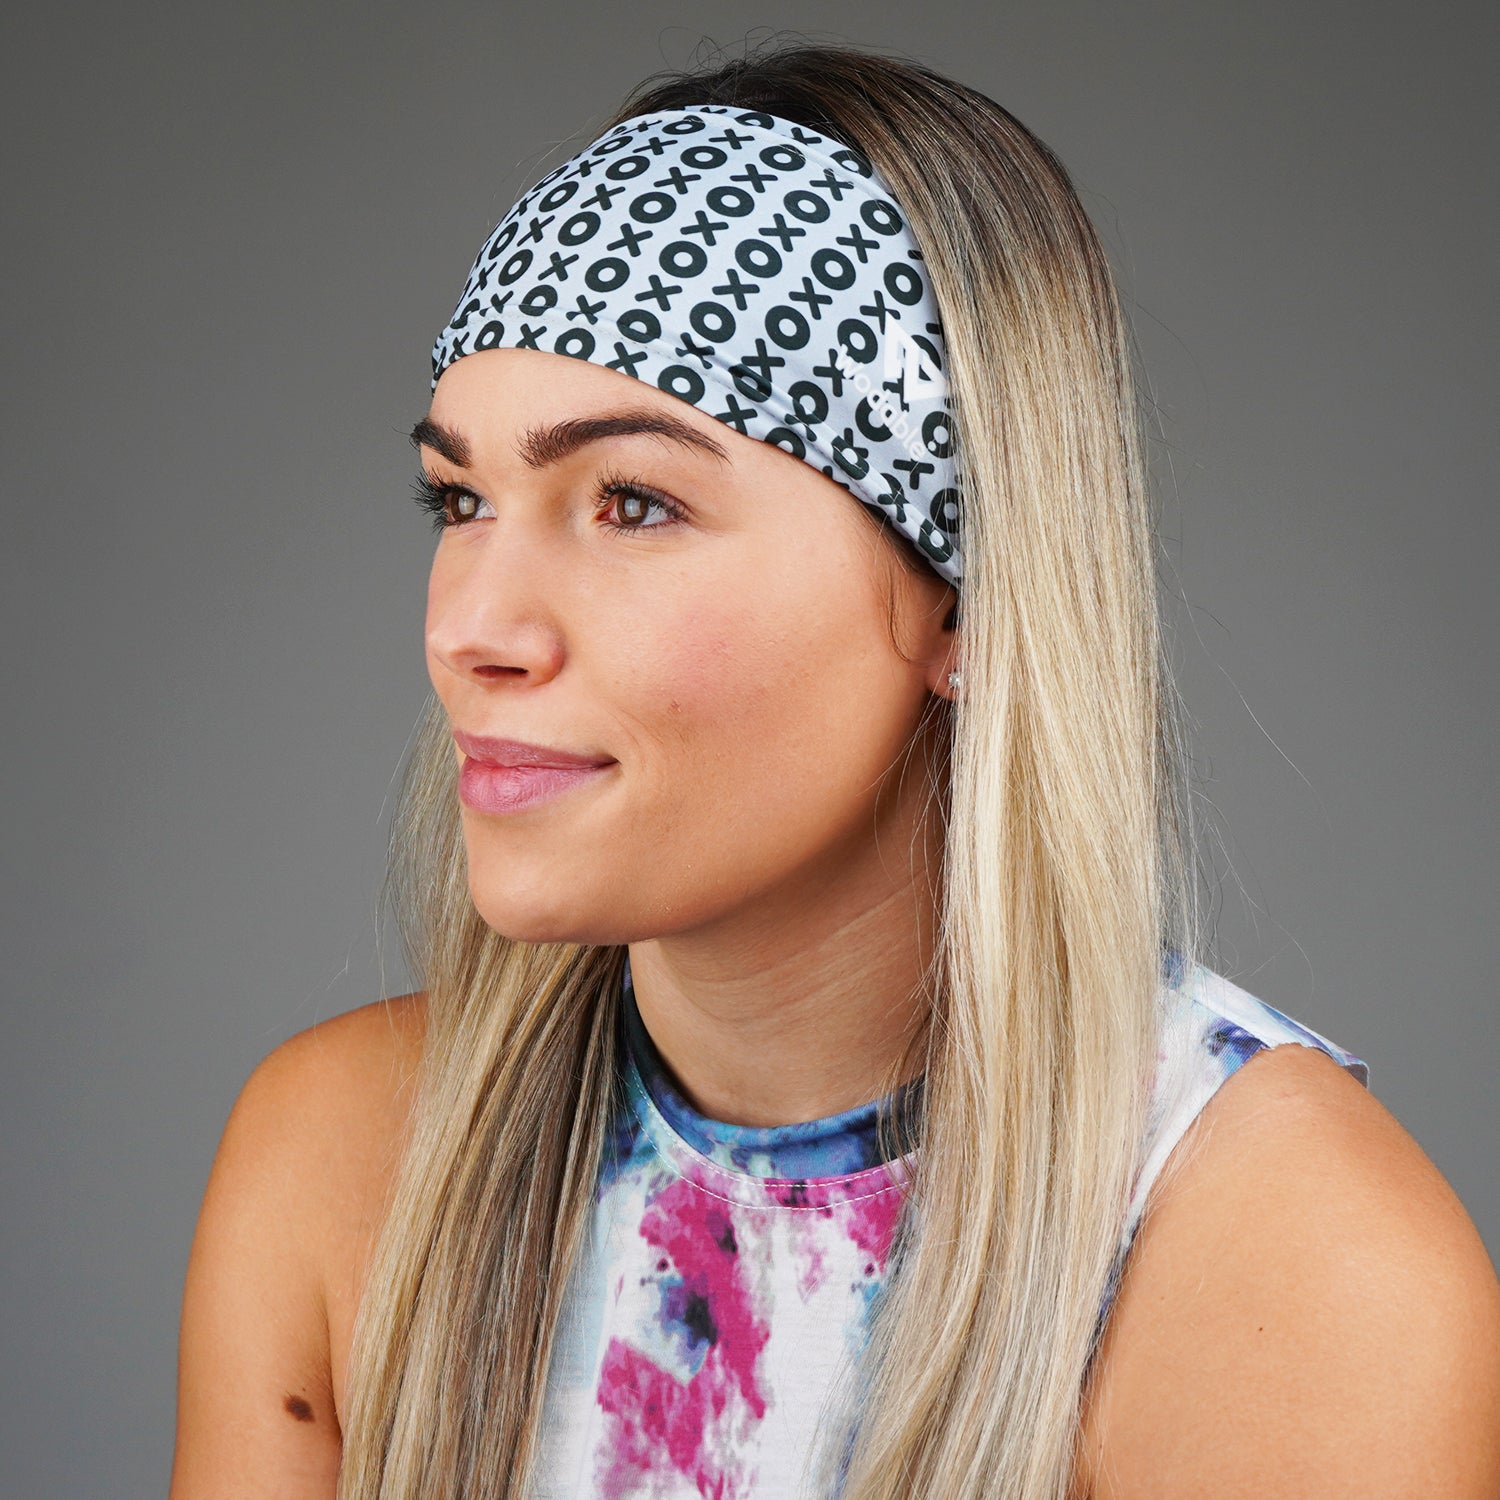 Naughts & Crosses Headband